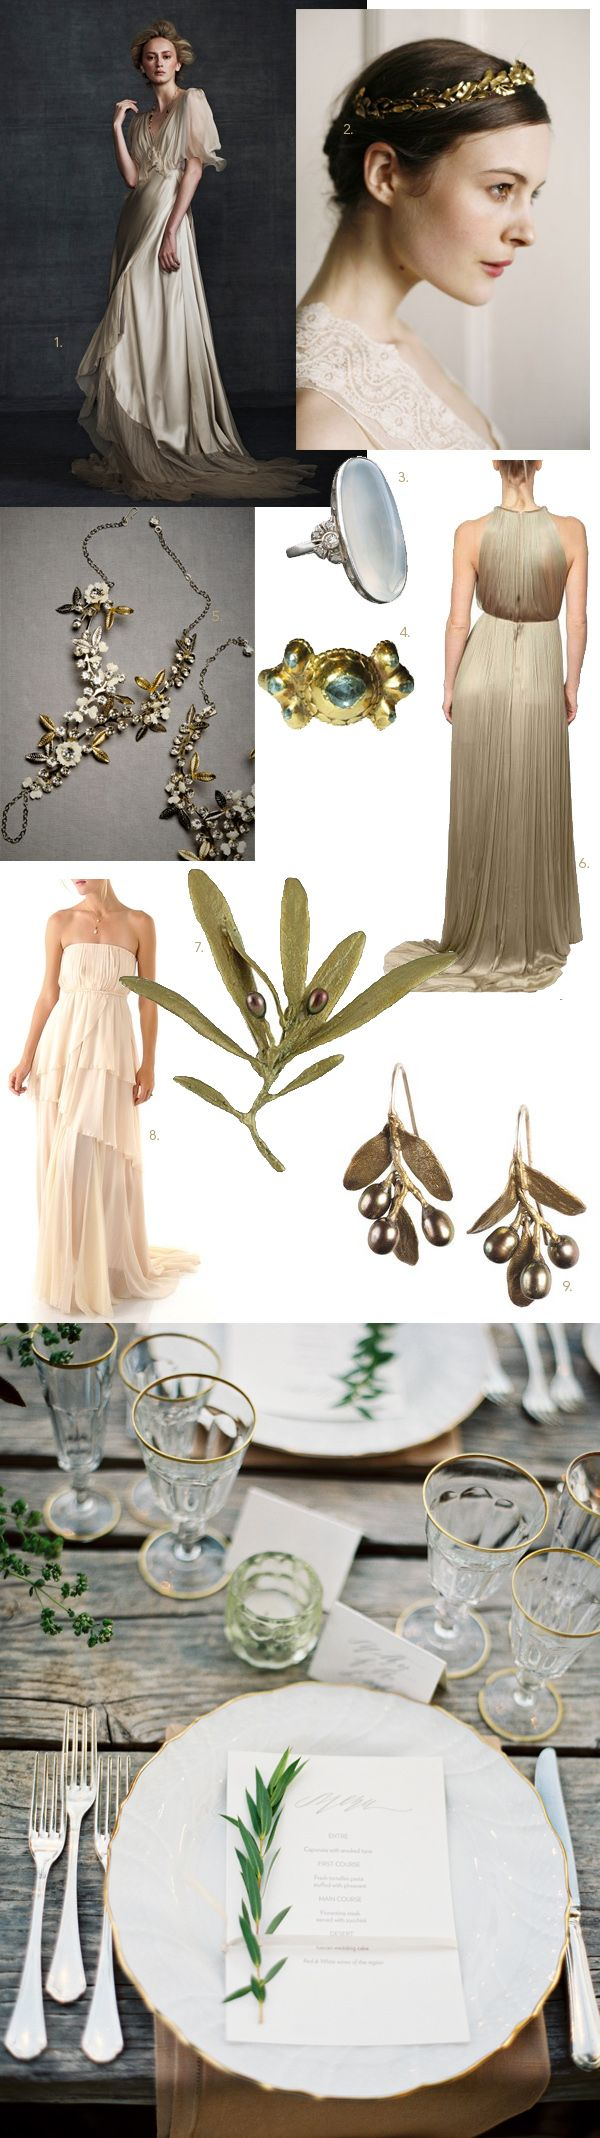 Greek Goddess Wedding Inspiration - Draped gowns, delicate olive-branch accessories, & gold trim. // #Decor #Adornments